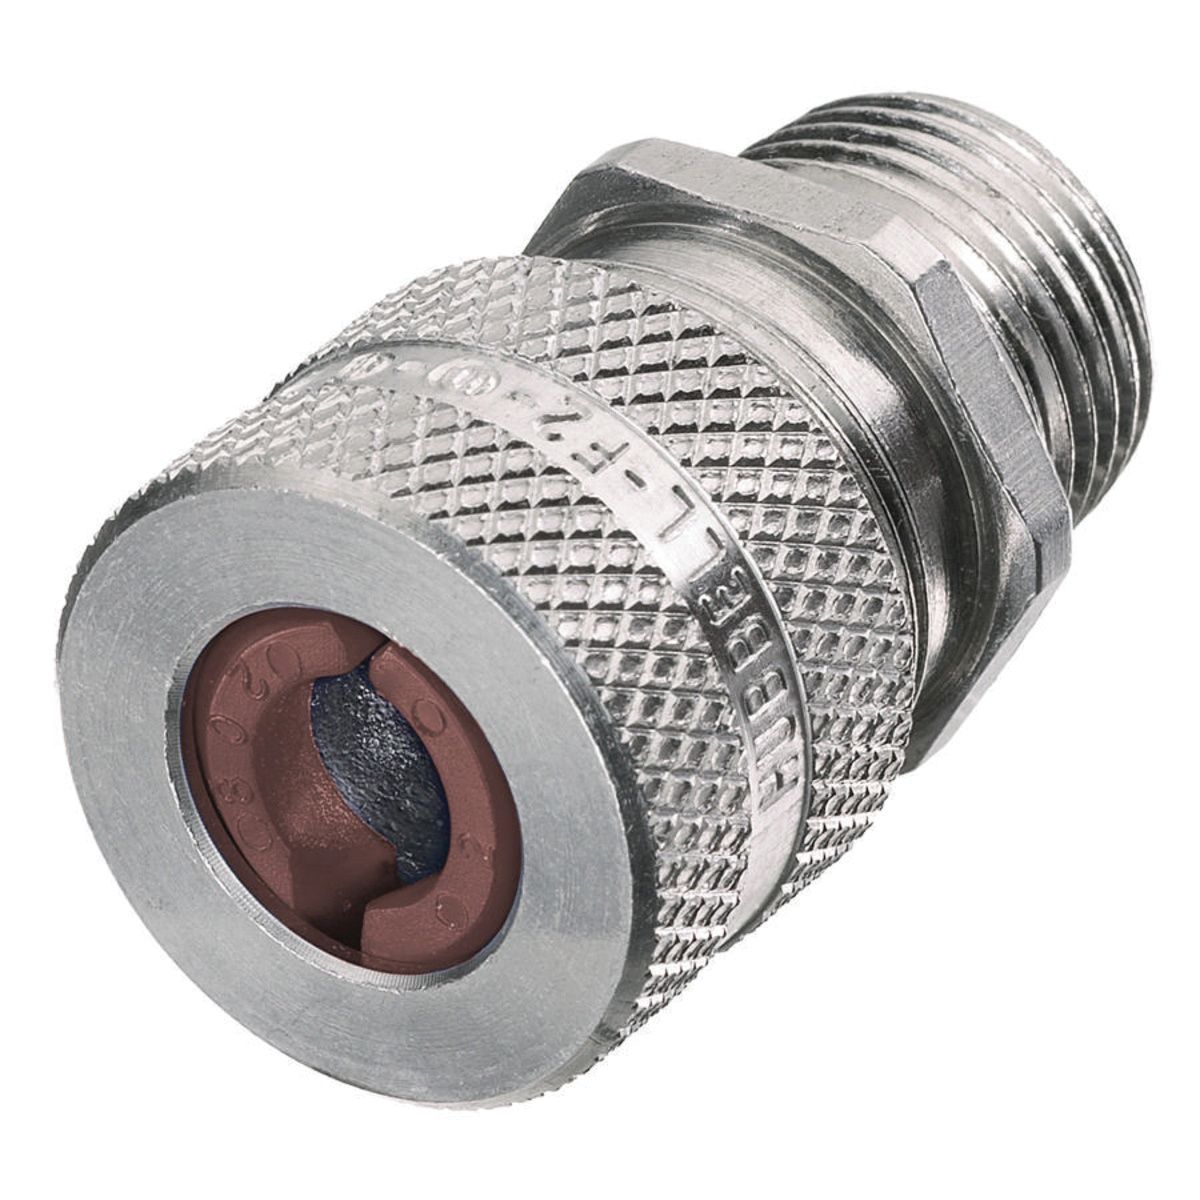 Hubbell Wiring Shc1026 Machined Aluminum Standard Duty Series Form Copper Connectors F3 Straight Male Liquidtight Cord